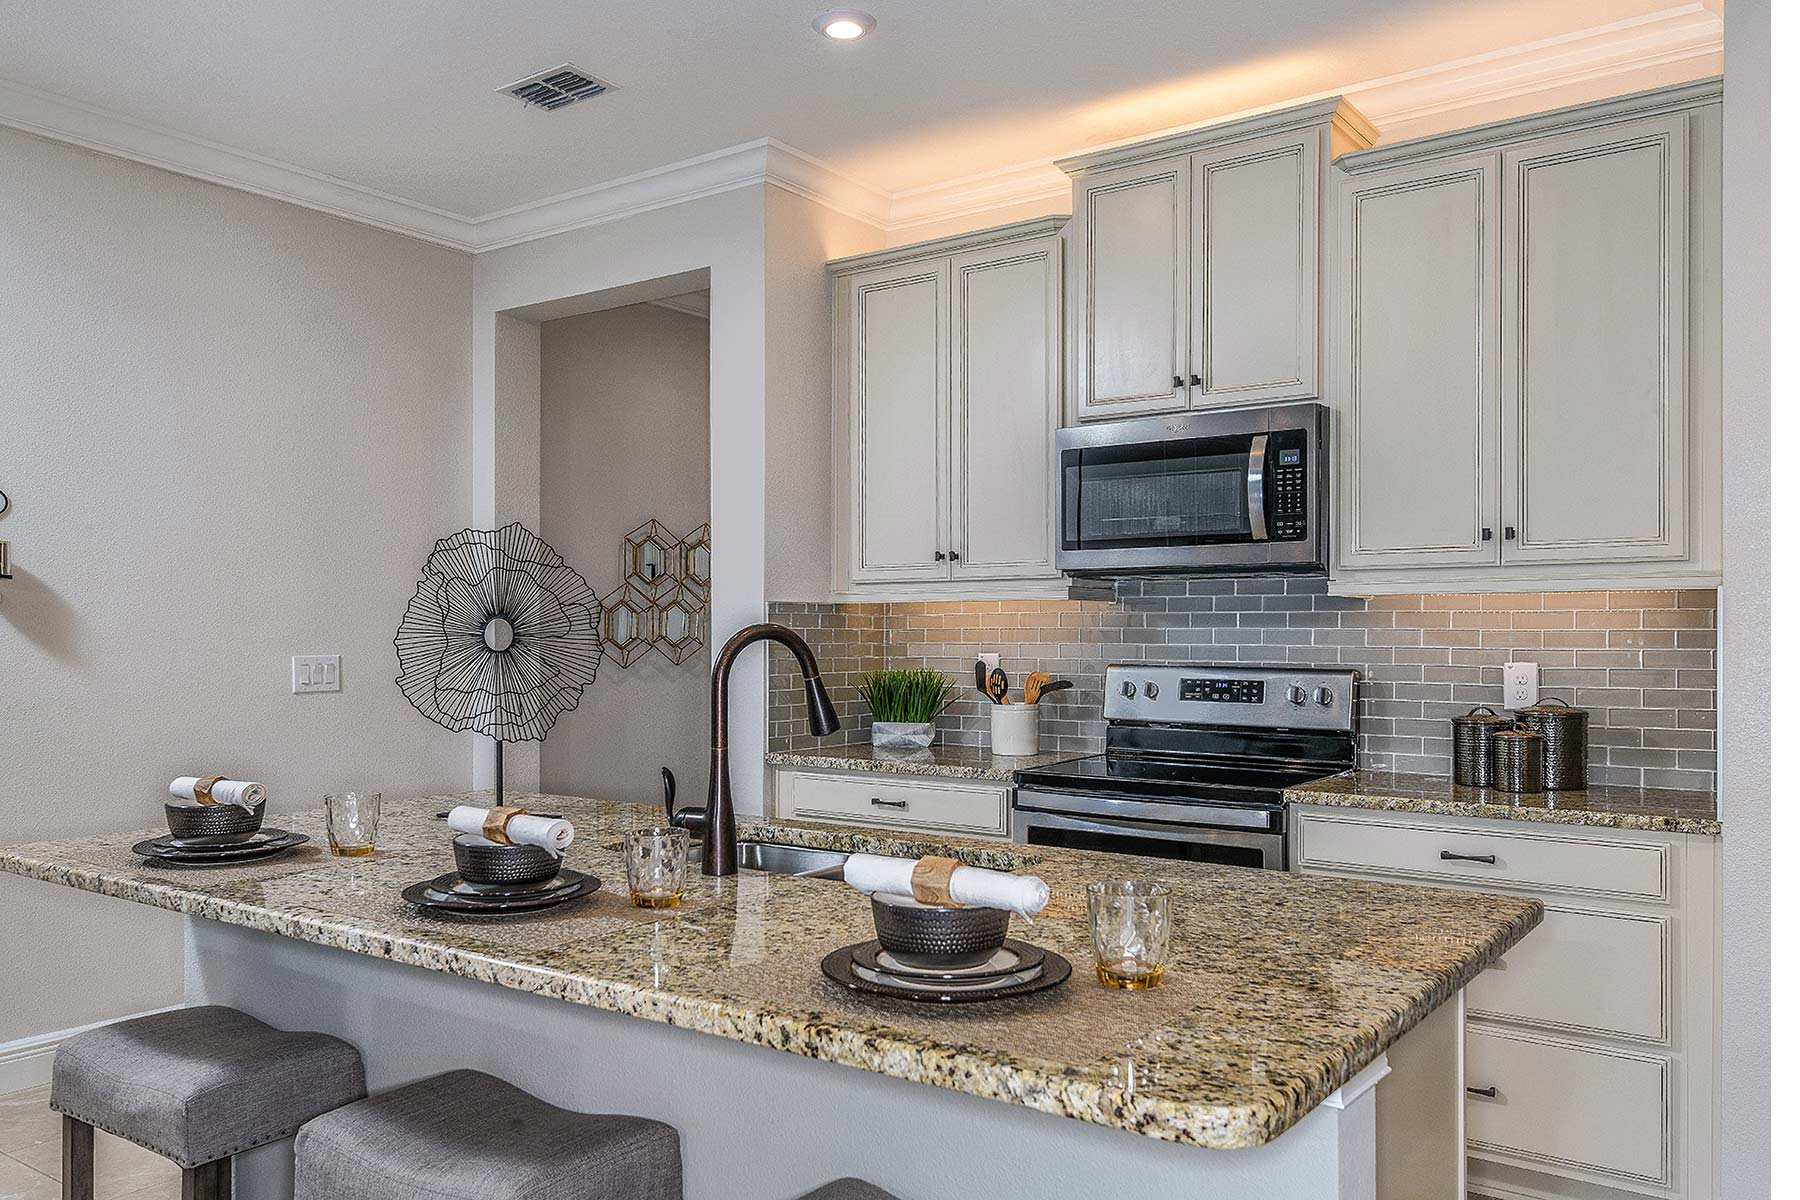 Ormond Plan Kitchen at Volanti in Wesley Chapel Florida by Mattamy Homes